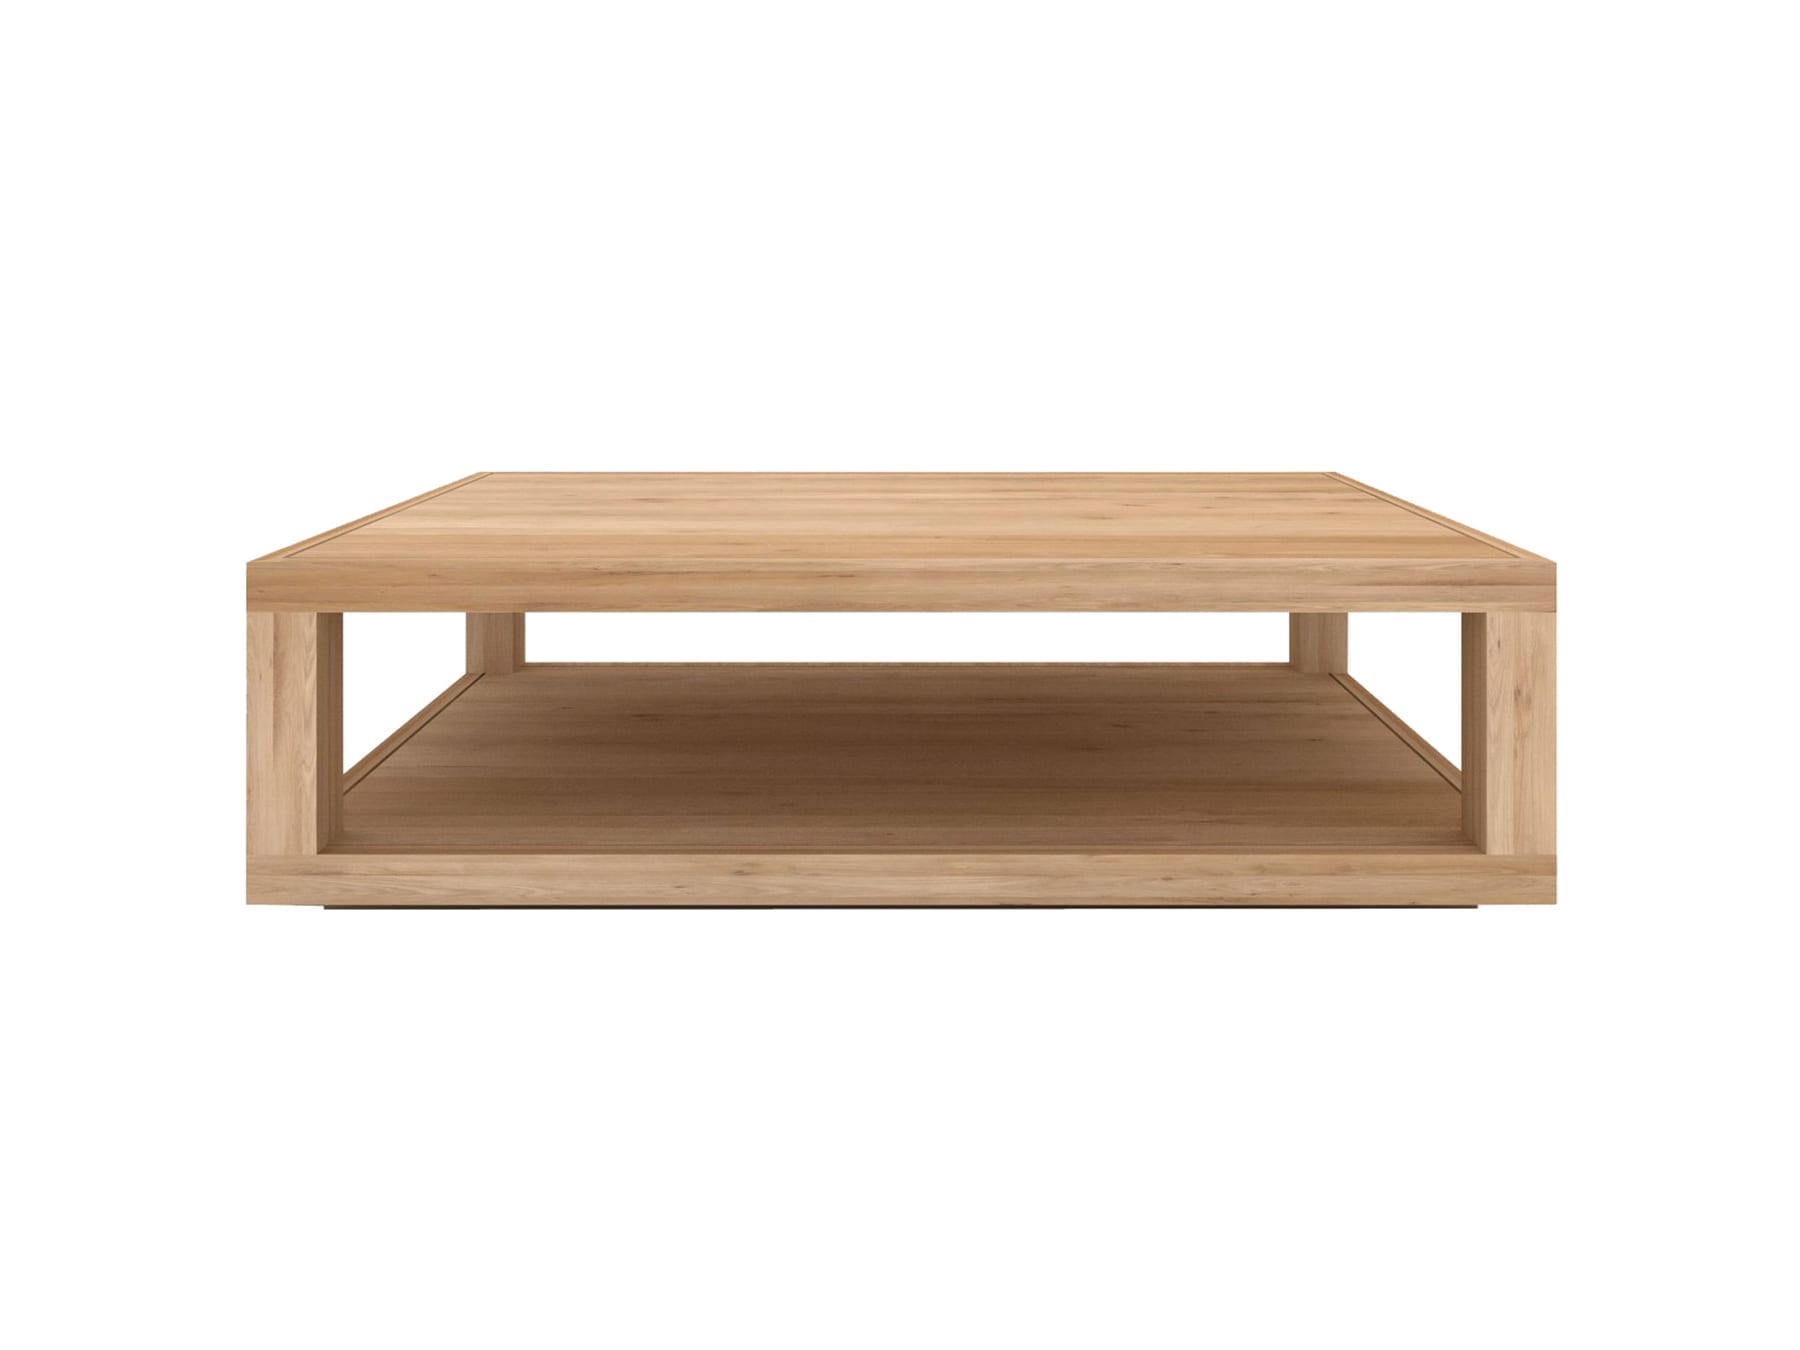 Ethnicraft Duplex Coffee Table available at McKenzie & Willis